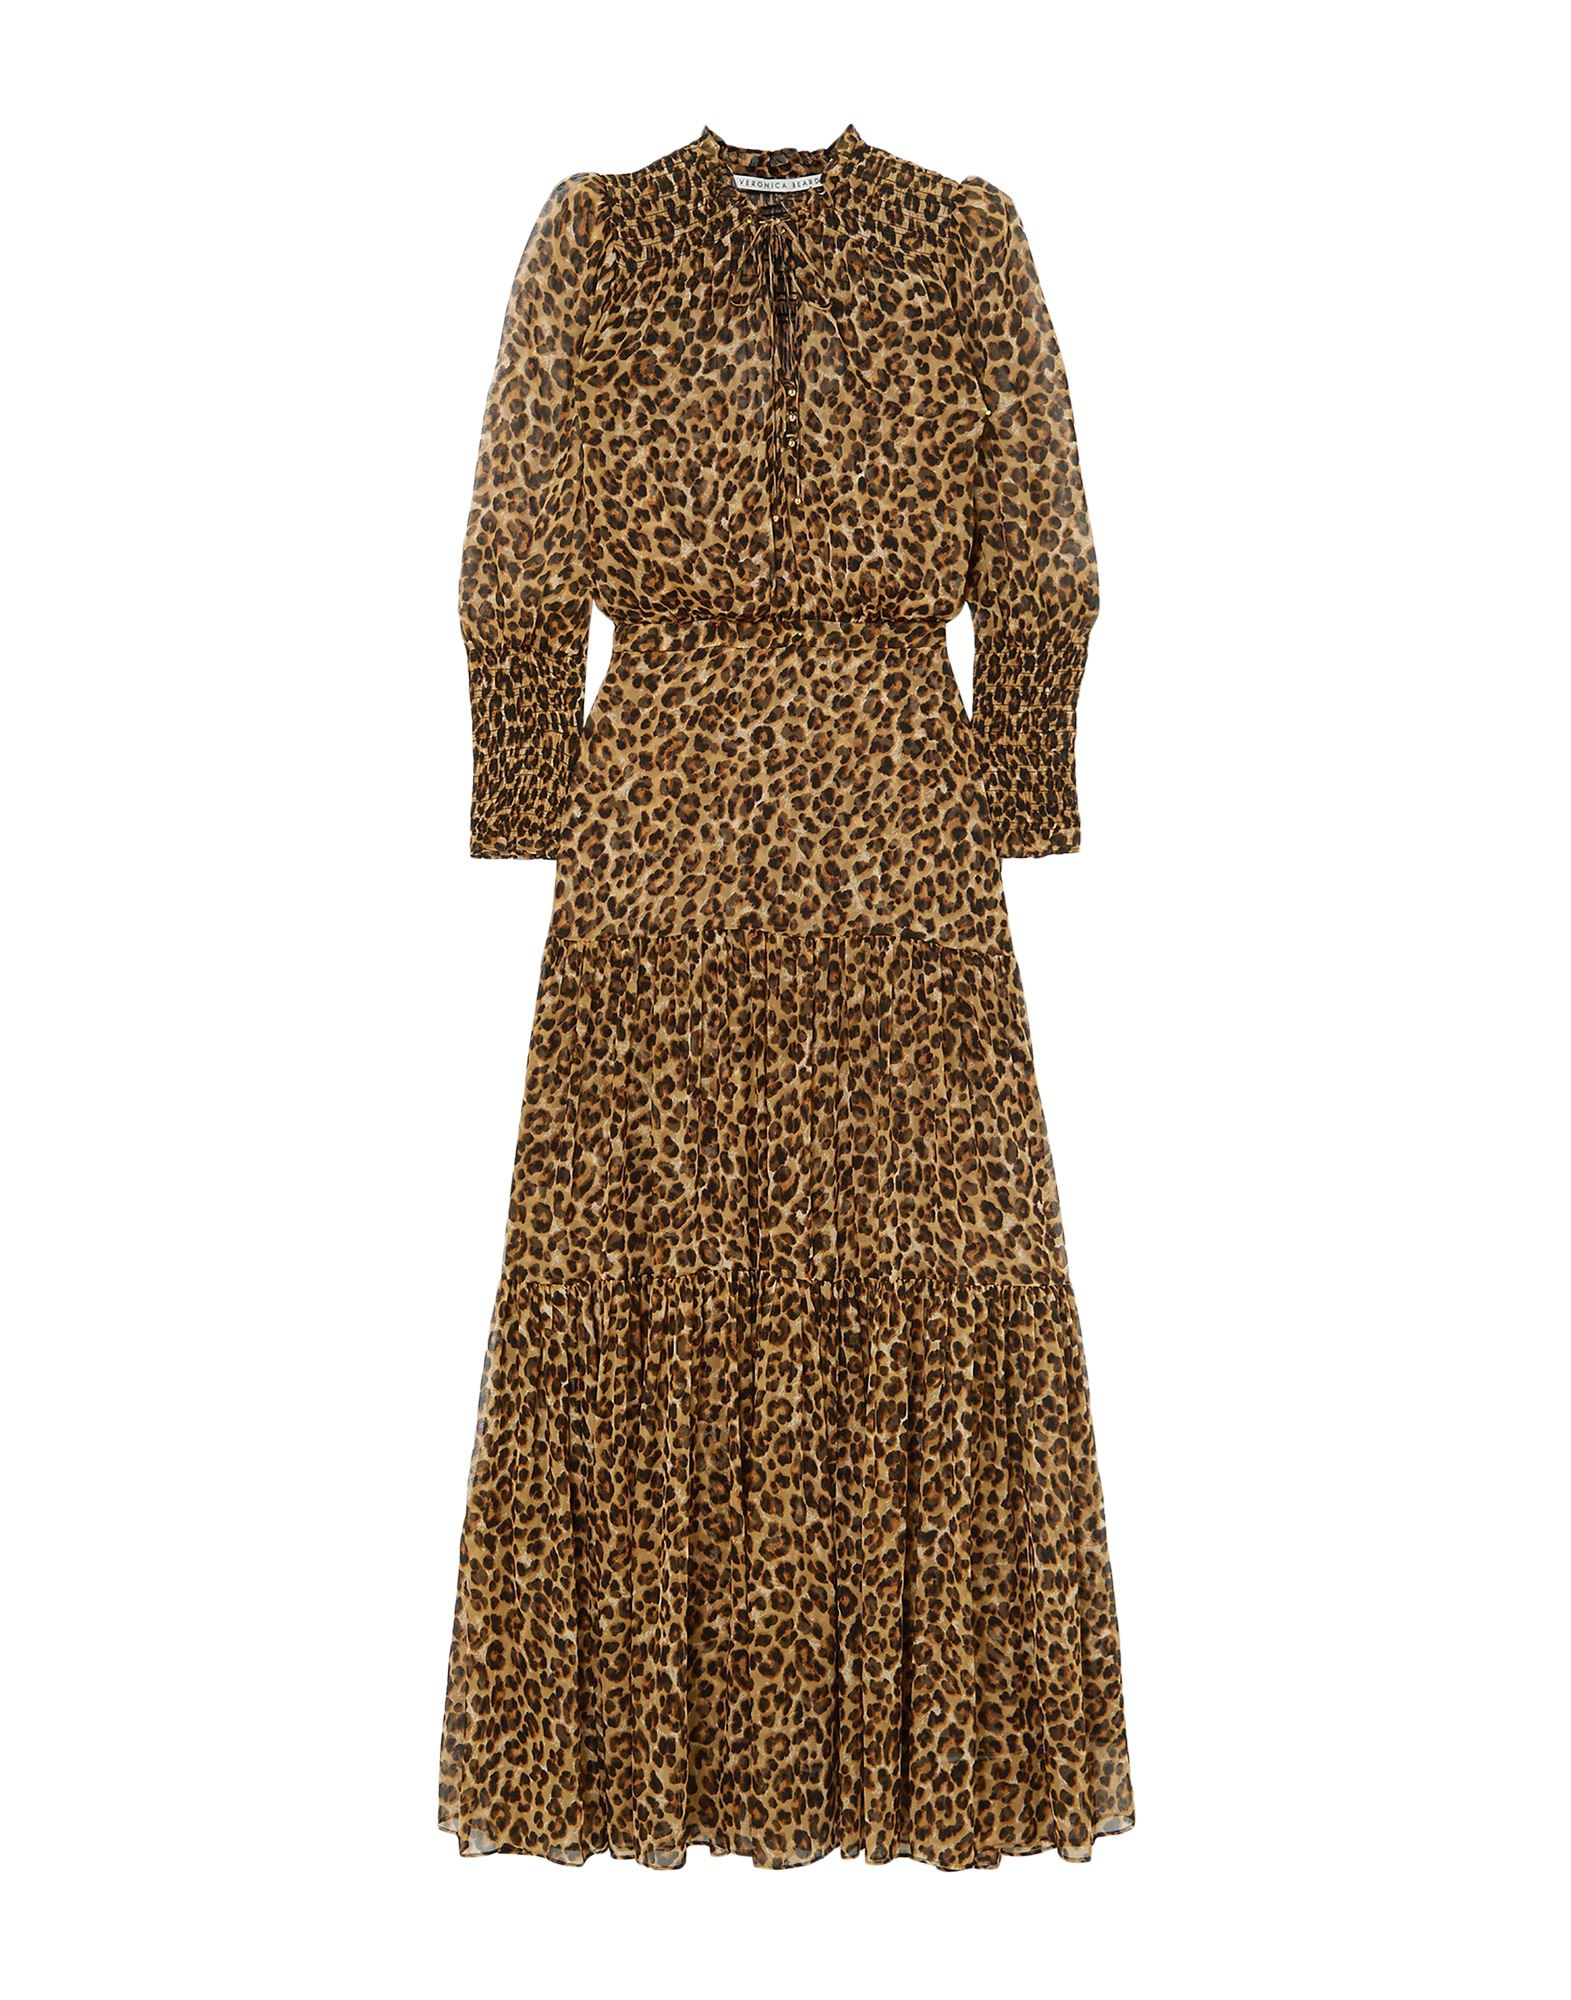 VERONICA BEARD Long dresses. crepe, detachable application, frills, leopard-print, deep neckline, long sleeves, no pockets, side closure, zipper closure, slip to line. 100% Silk